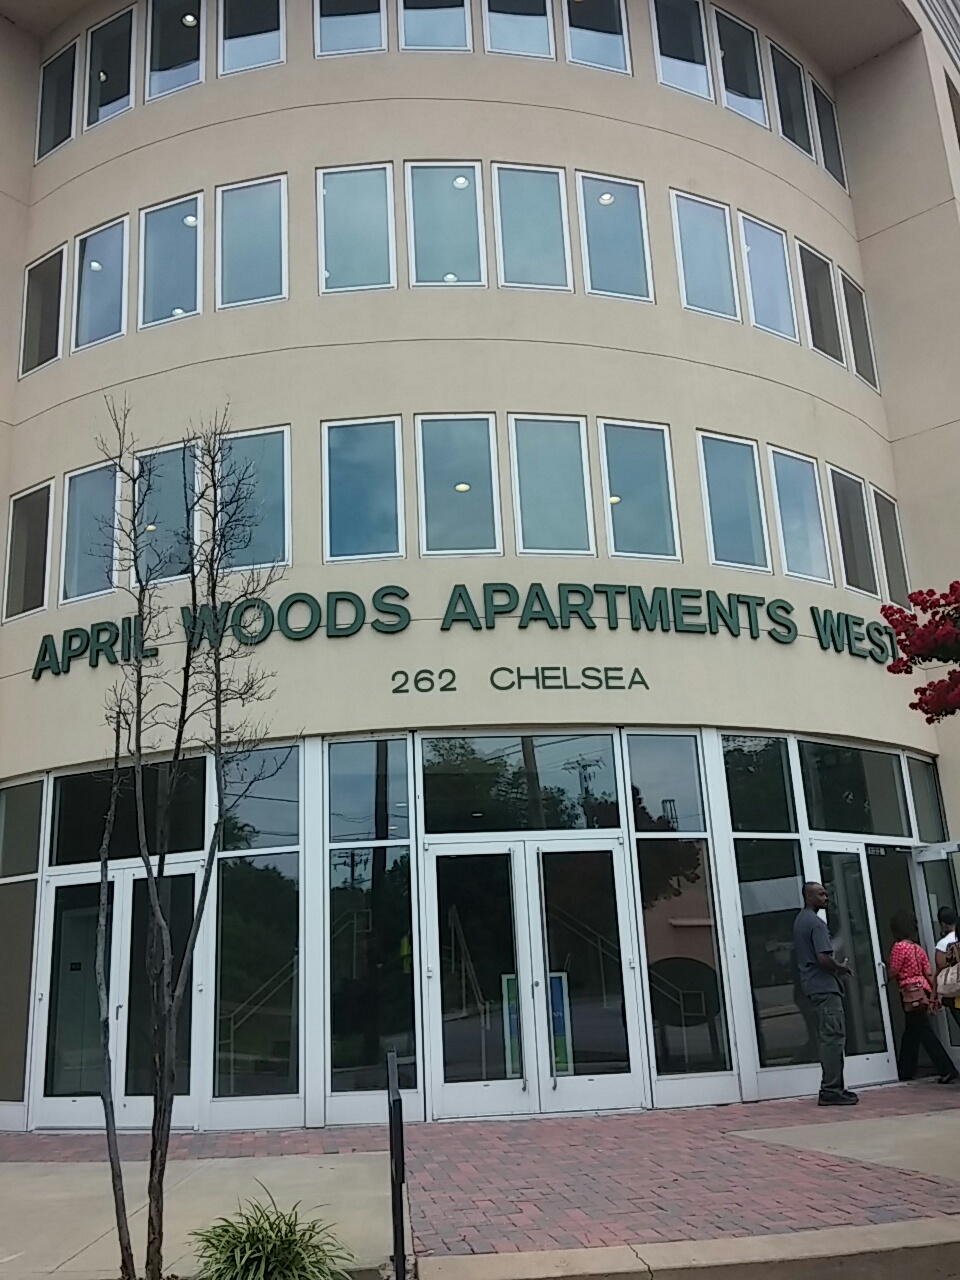 2010 - Named General Partners on April Woods Apartment Complex.Completed Eight (8) New Homes